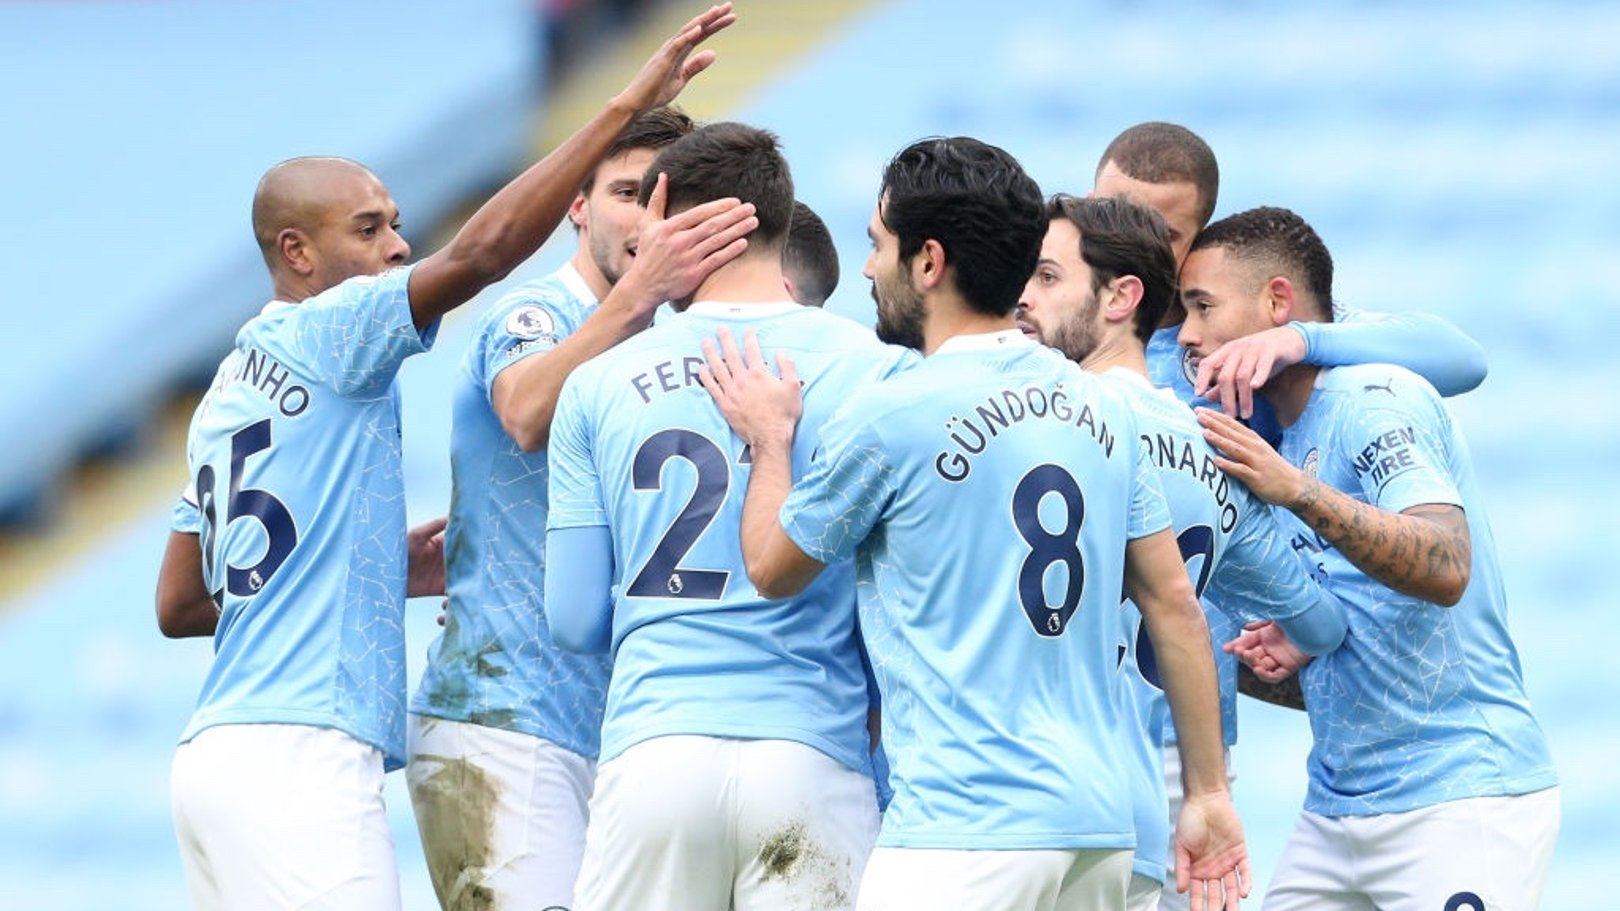 SQUAD GOALS: The team gather to celebrate the opening goal.